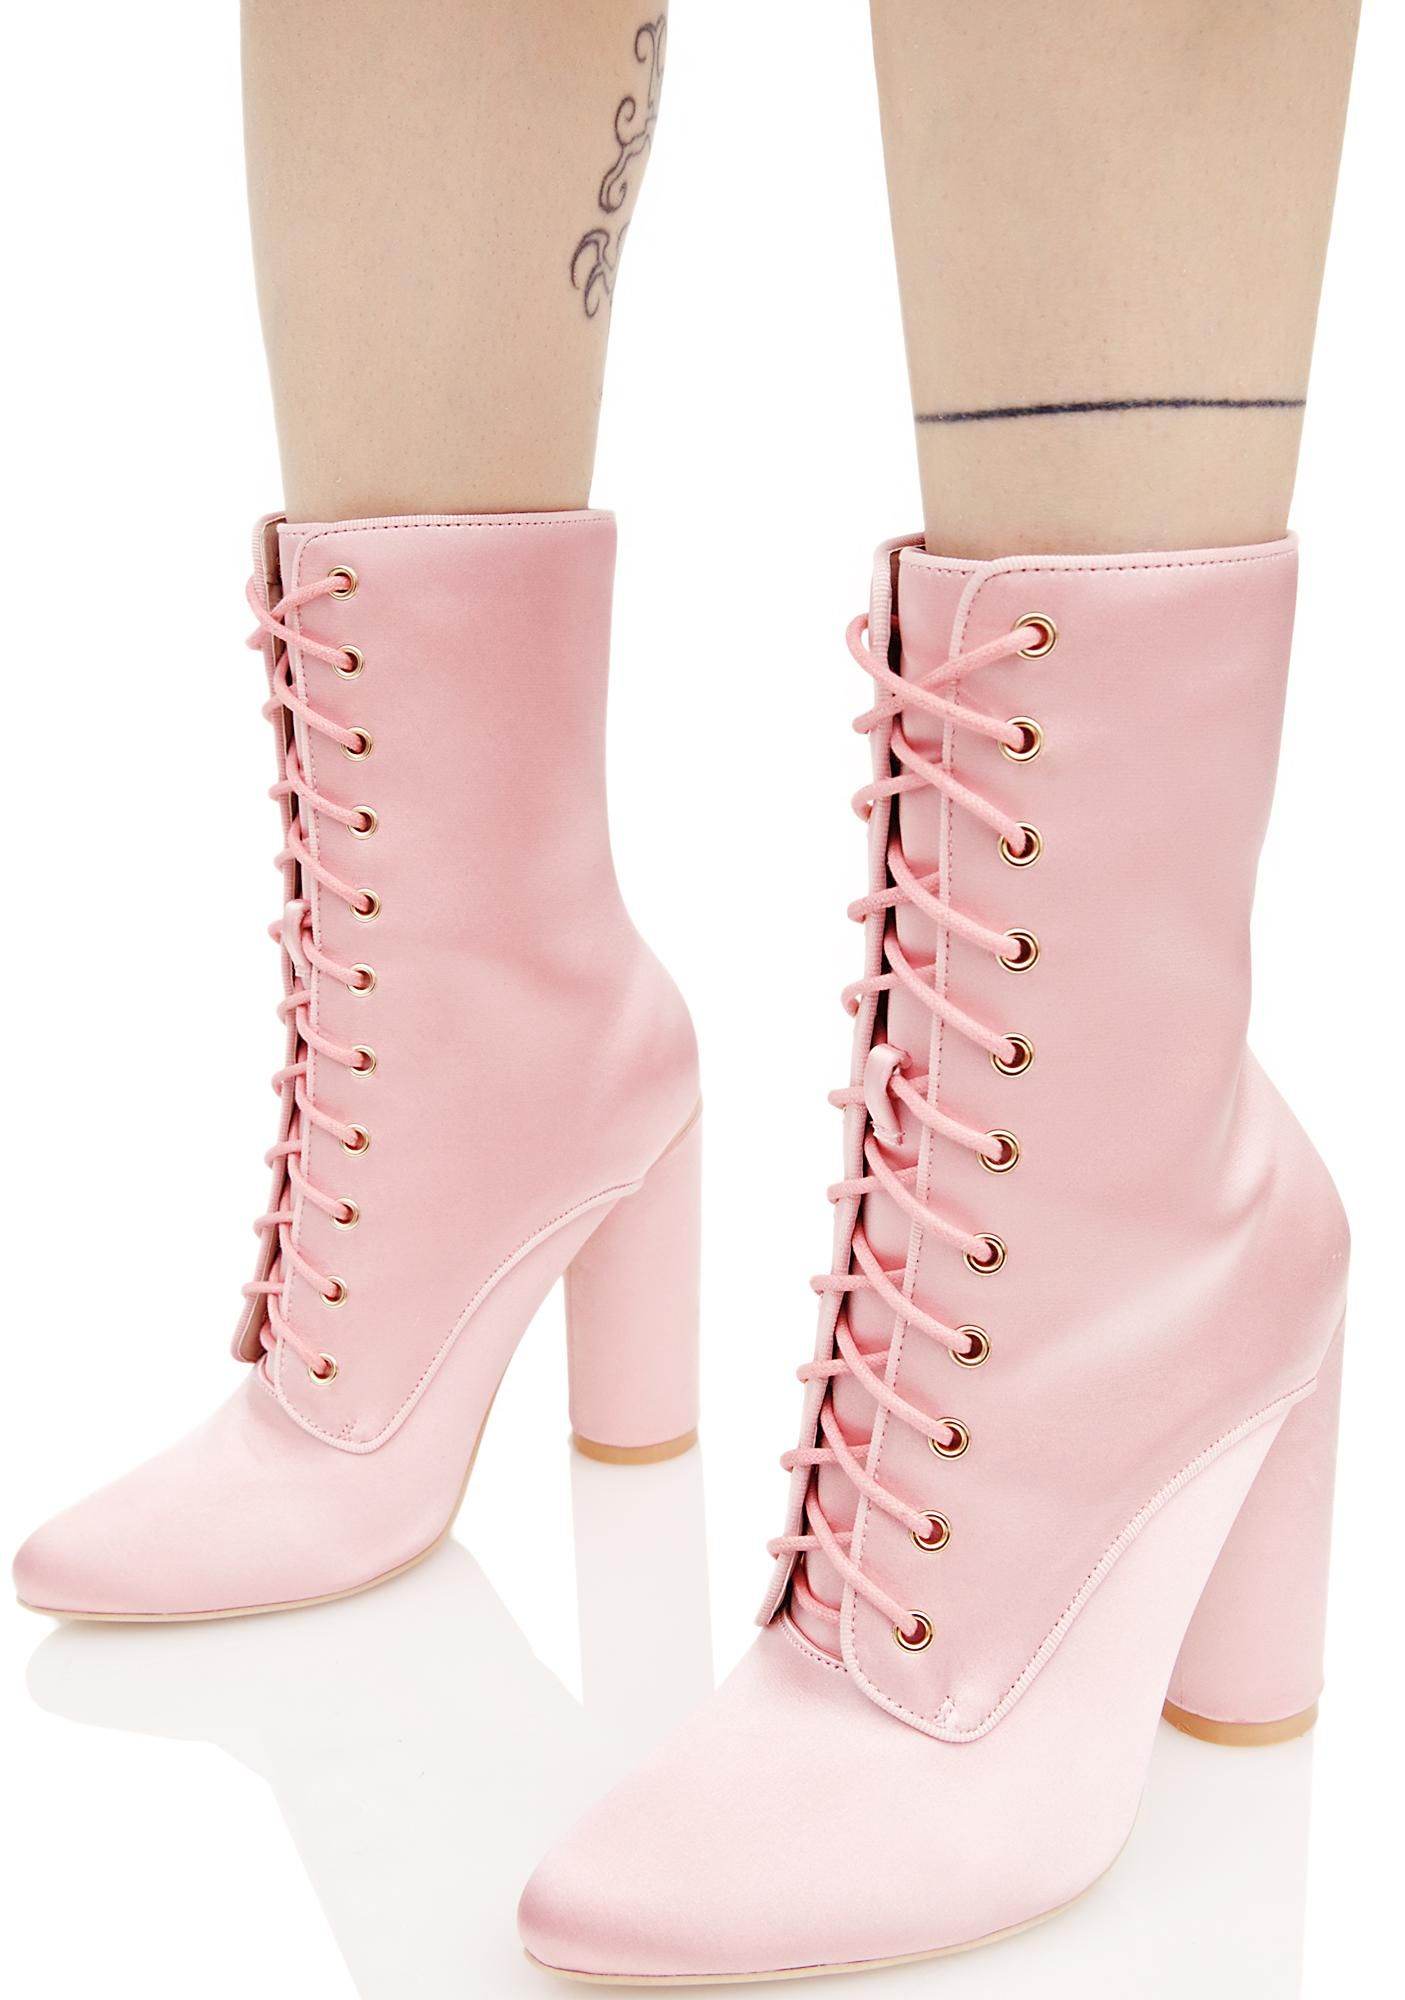 515c7e5157f So Posh Lace-Up Boots | Shoes. | Pink ankle boots, Satin shoes, Pink ...